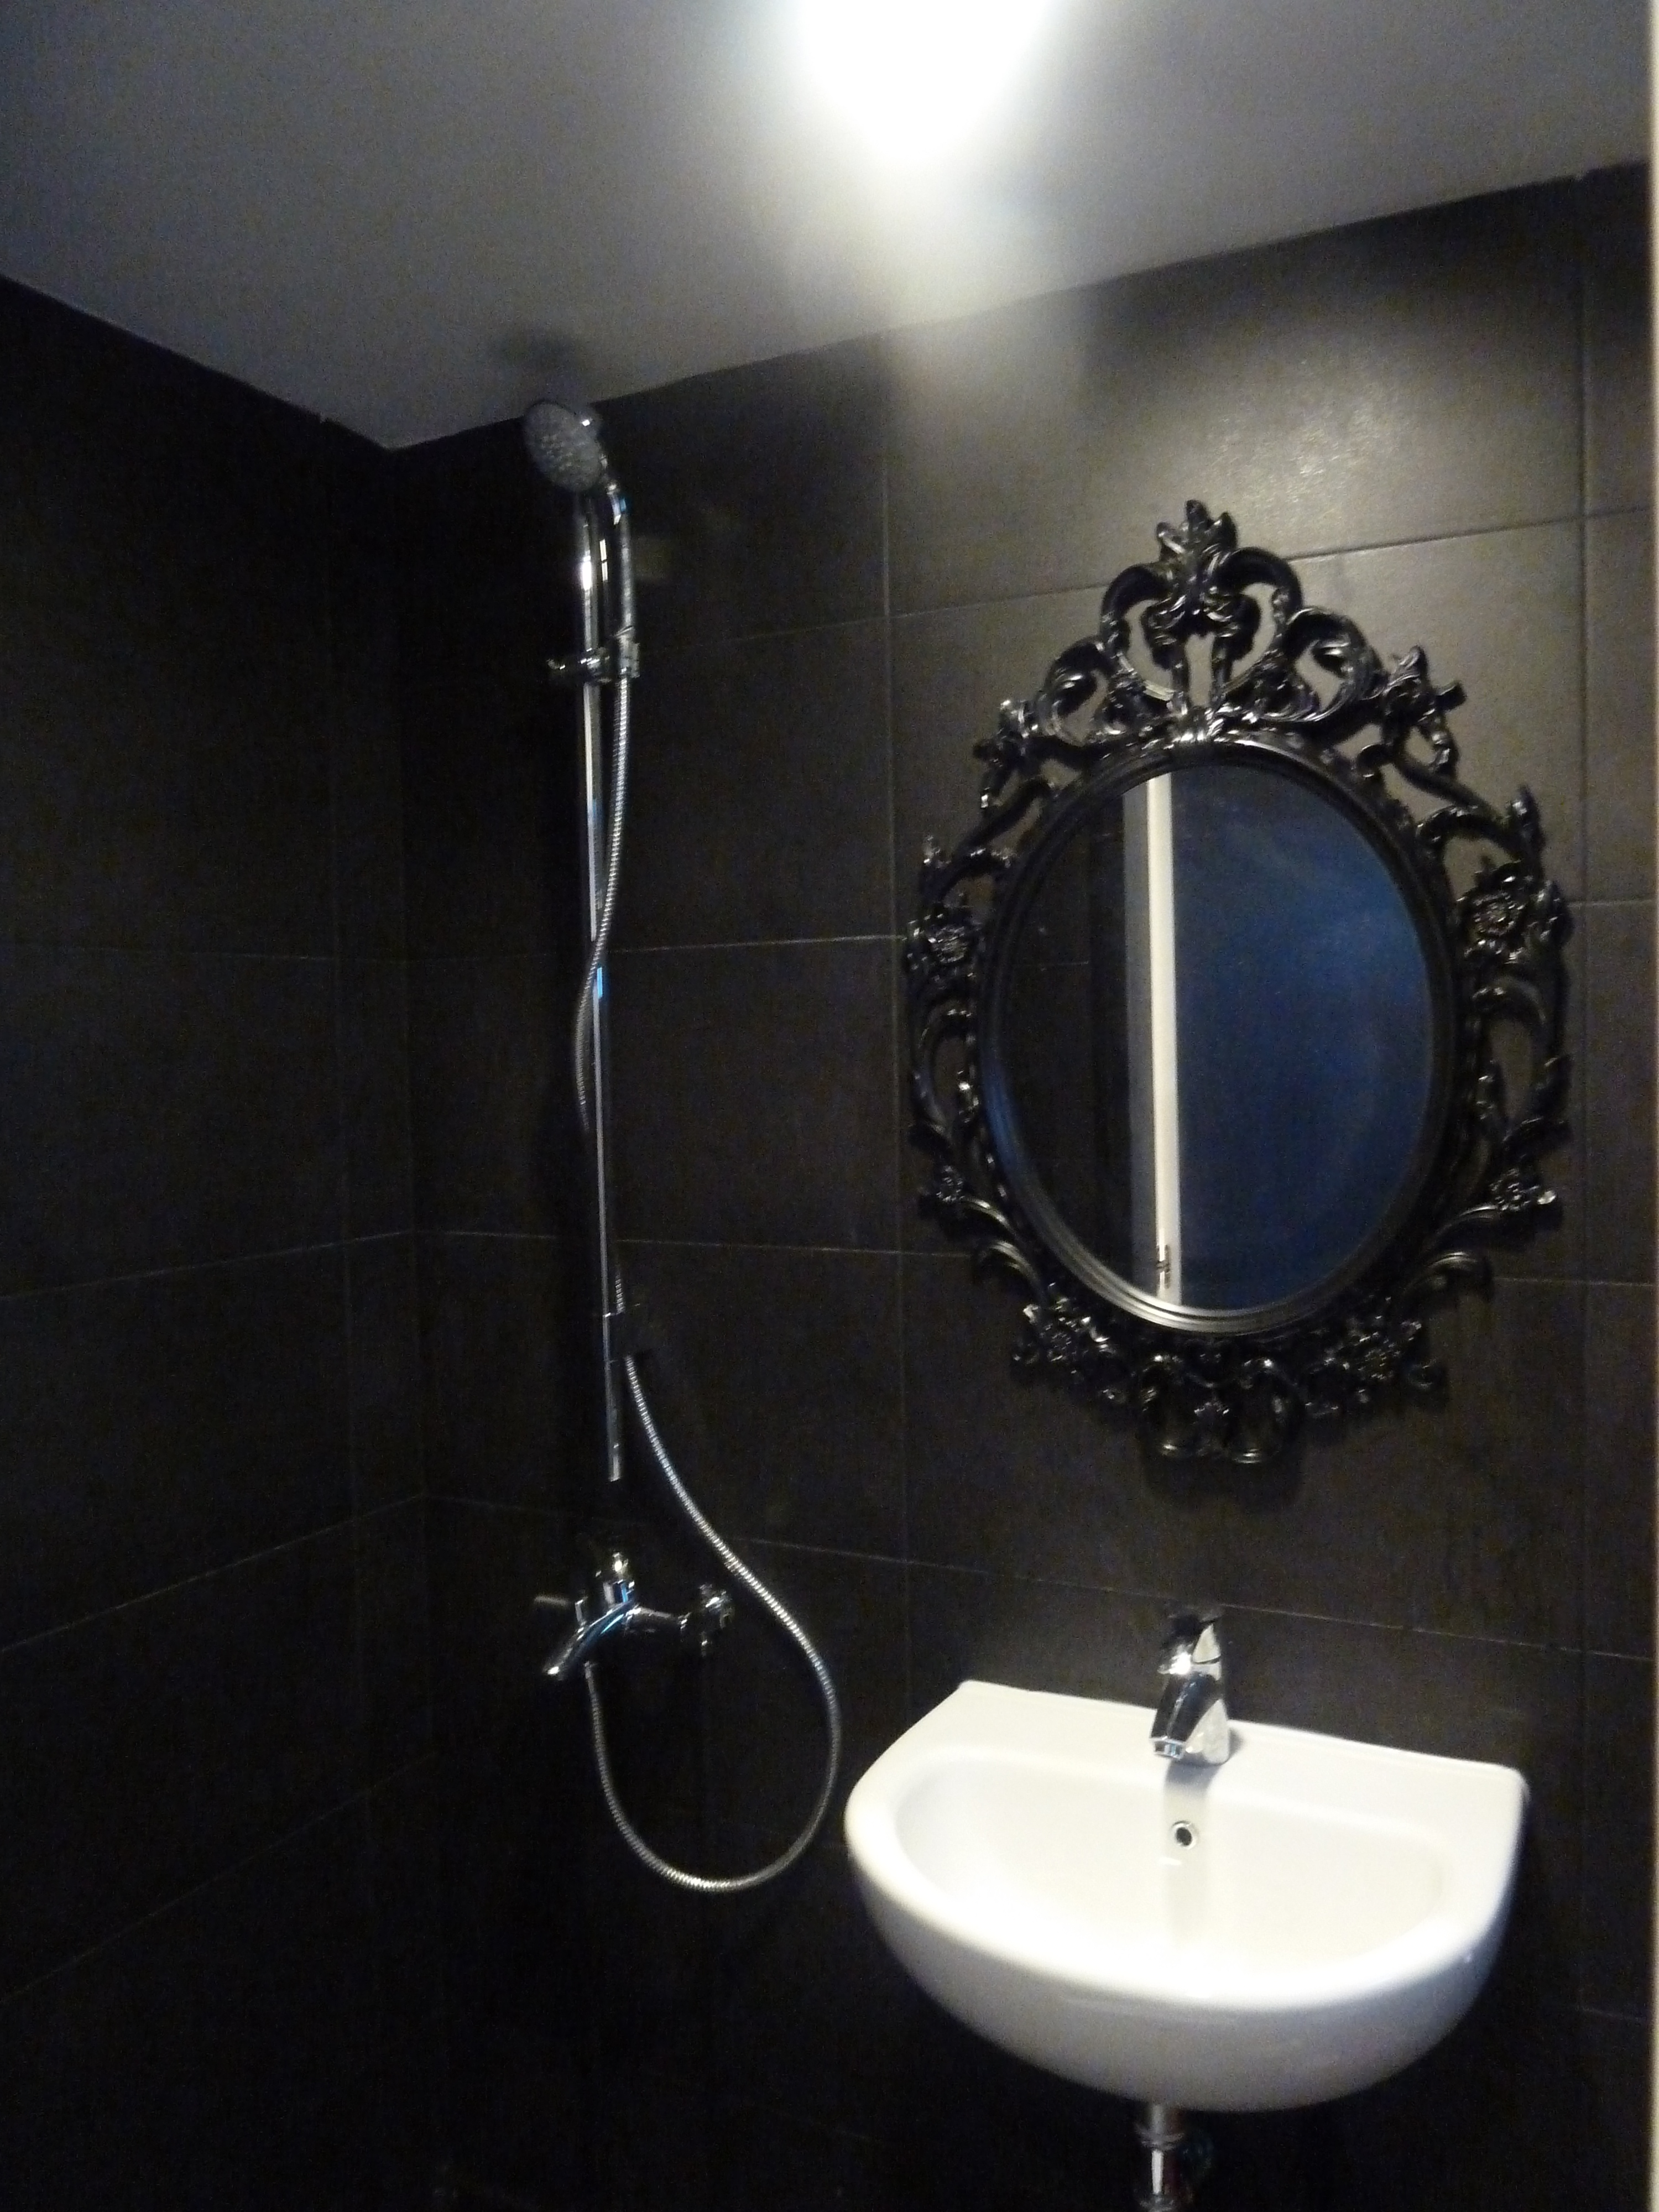 Completed pics – guest toilet | Our EM Renovation Experience